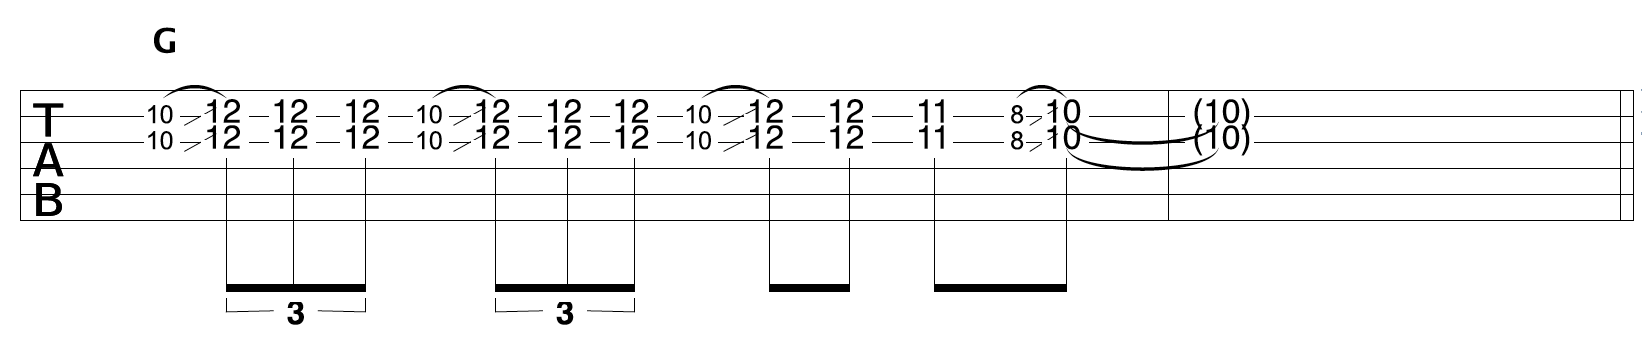 Learn The Technique Of Slide Guitar And Take Your Playing To A Whole